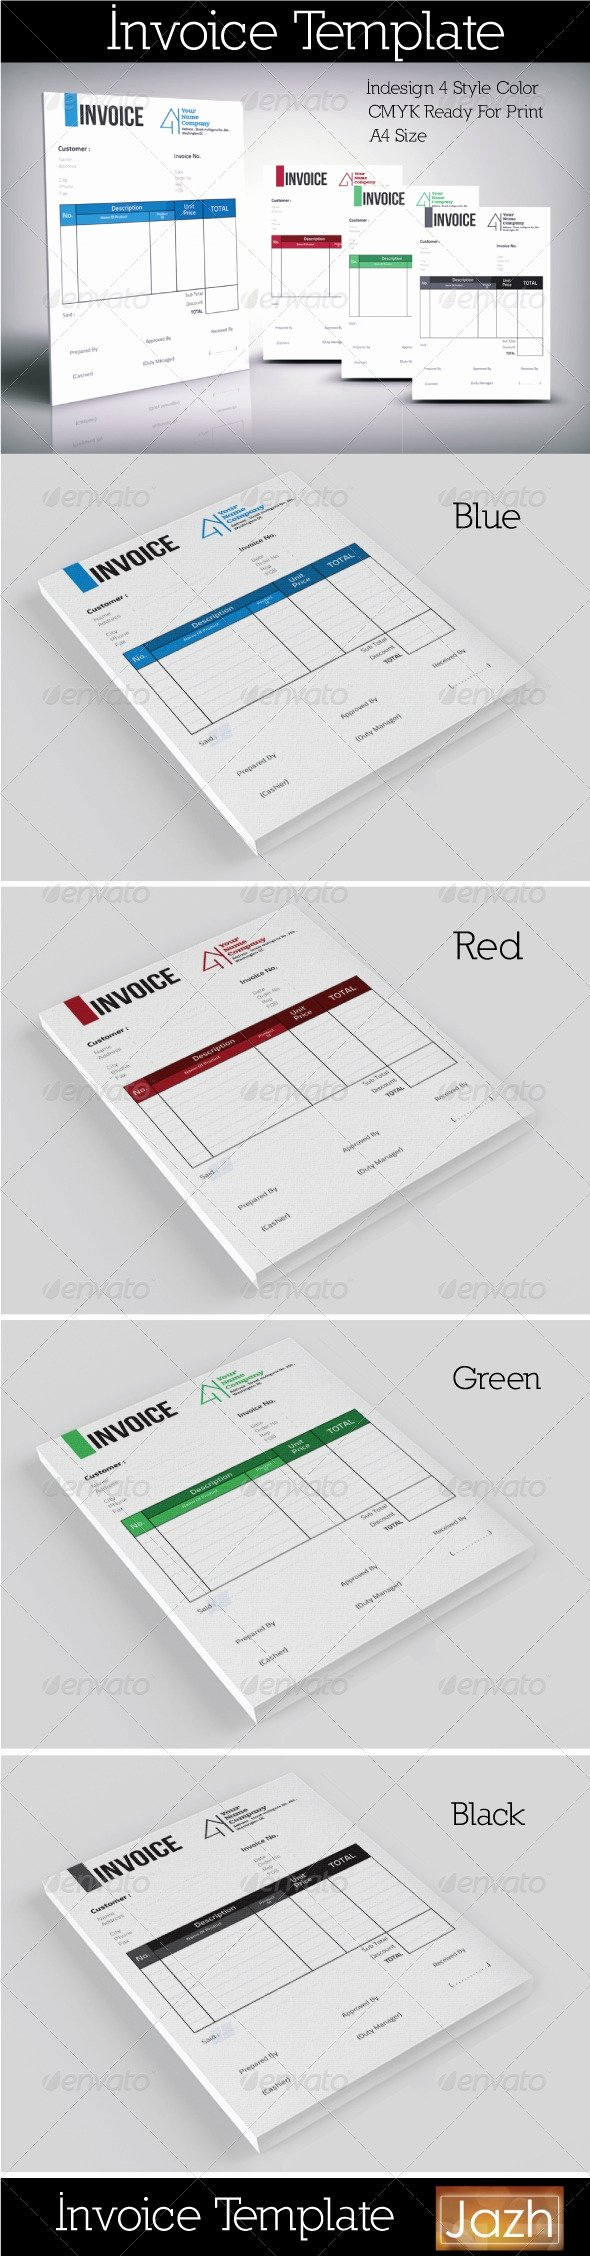 Free Indesign Invoice Template New Invoice Template Indesign Invoice Template Ideas